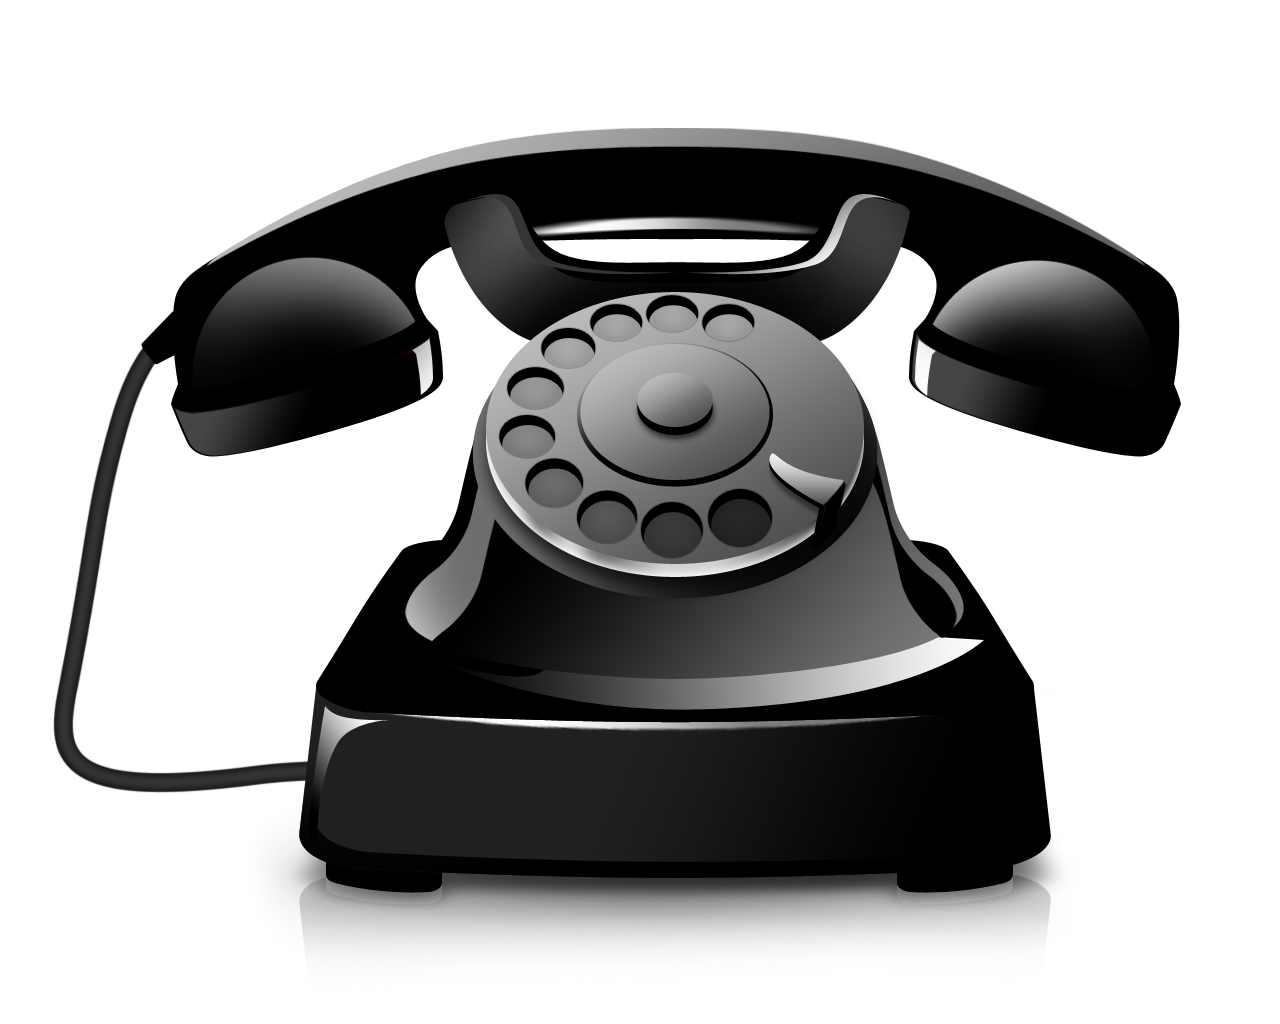 Telephone PNG - 6349